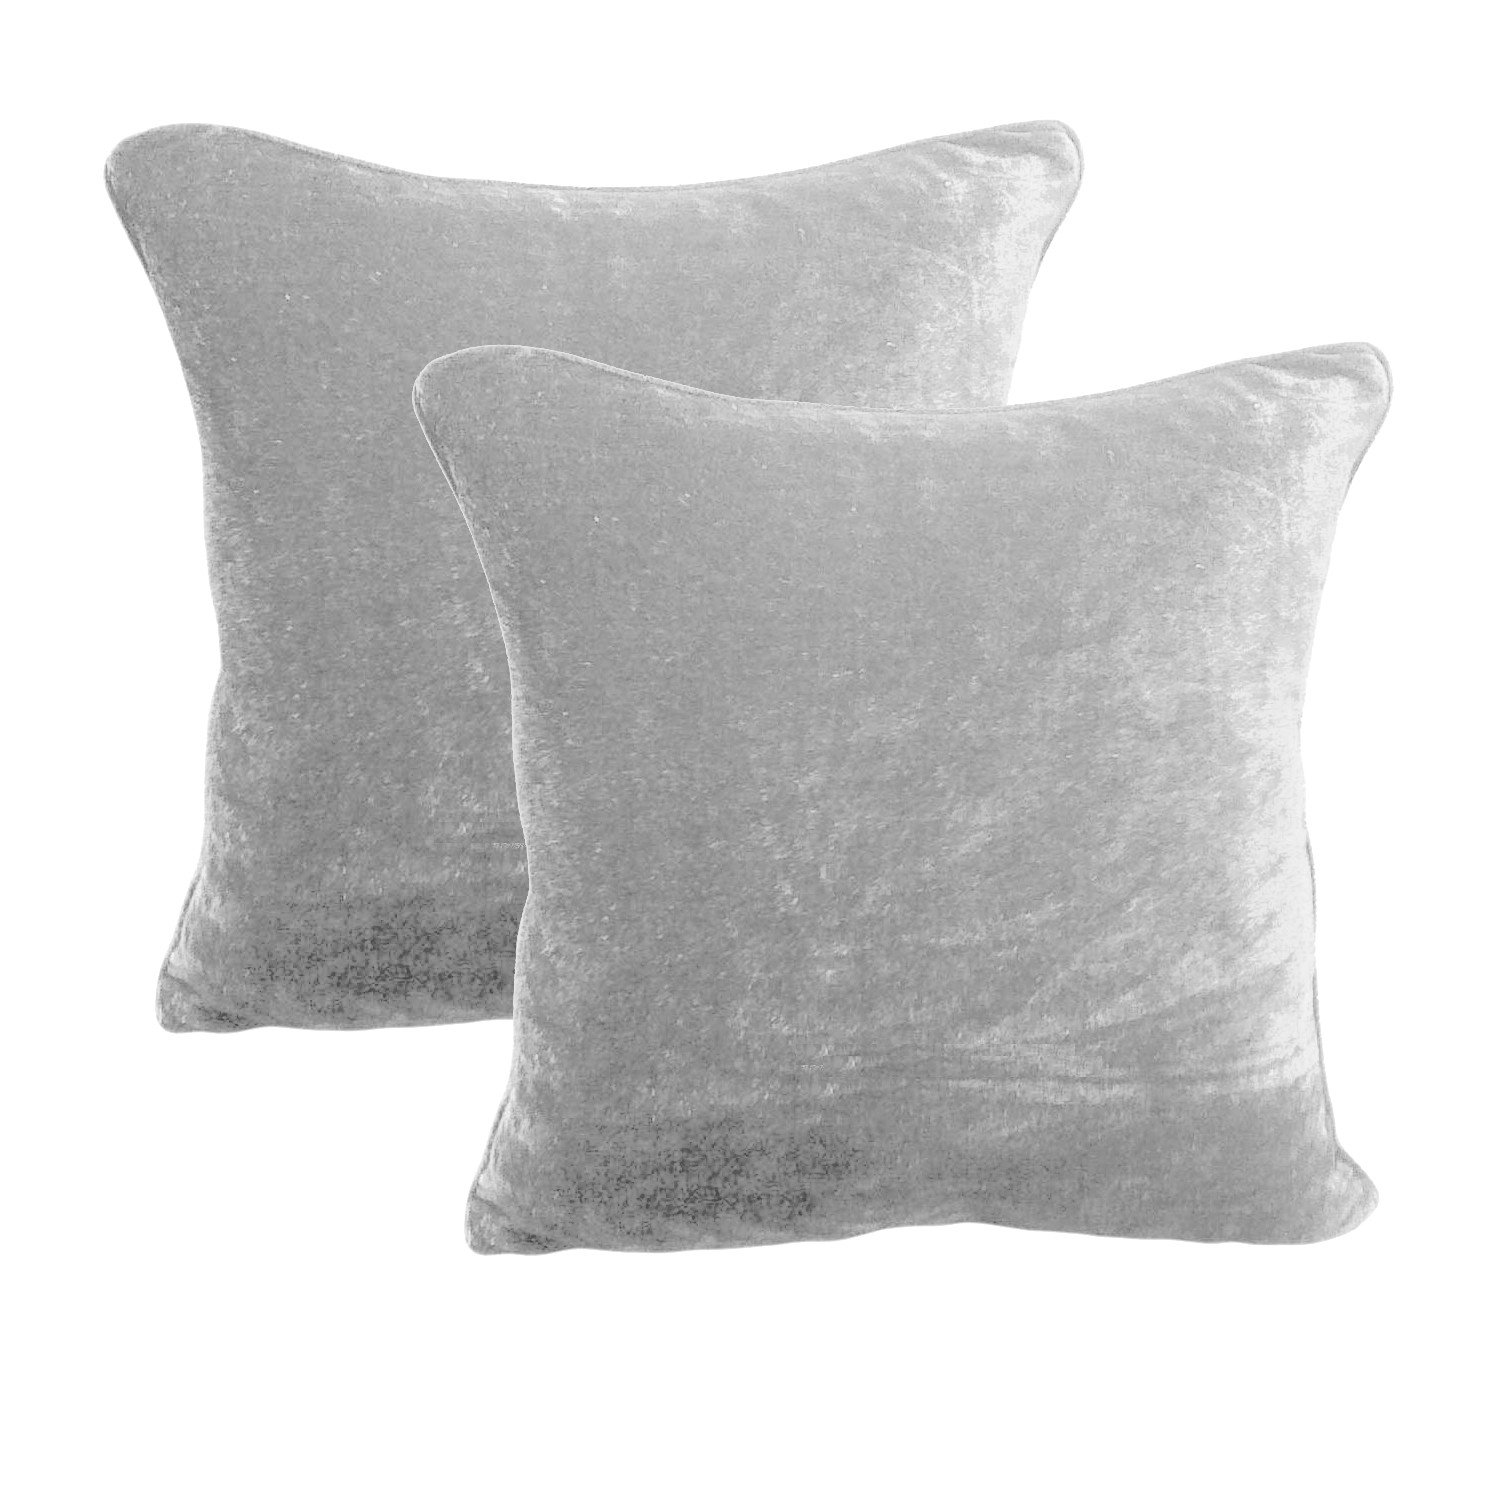 18 by 18 INCHES - 100% COTTON VELVET 6PC ZIPPER PILLOW COVER SHAMS EURO SILVER